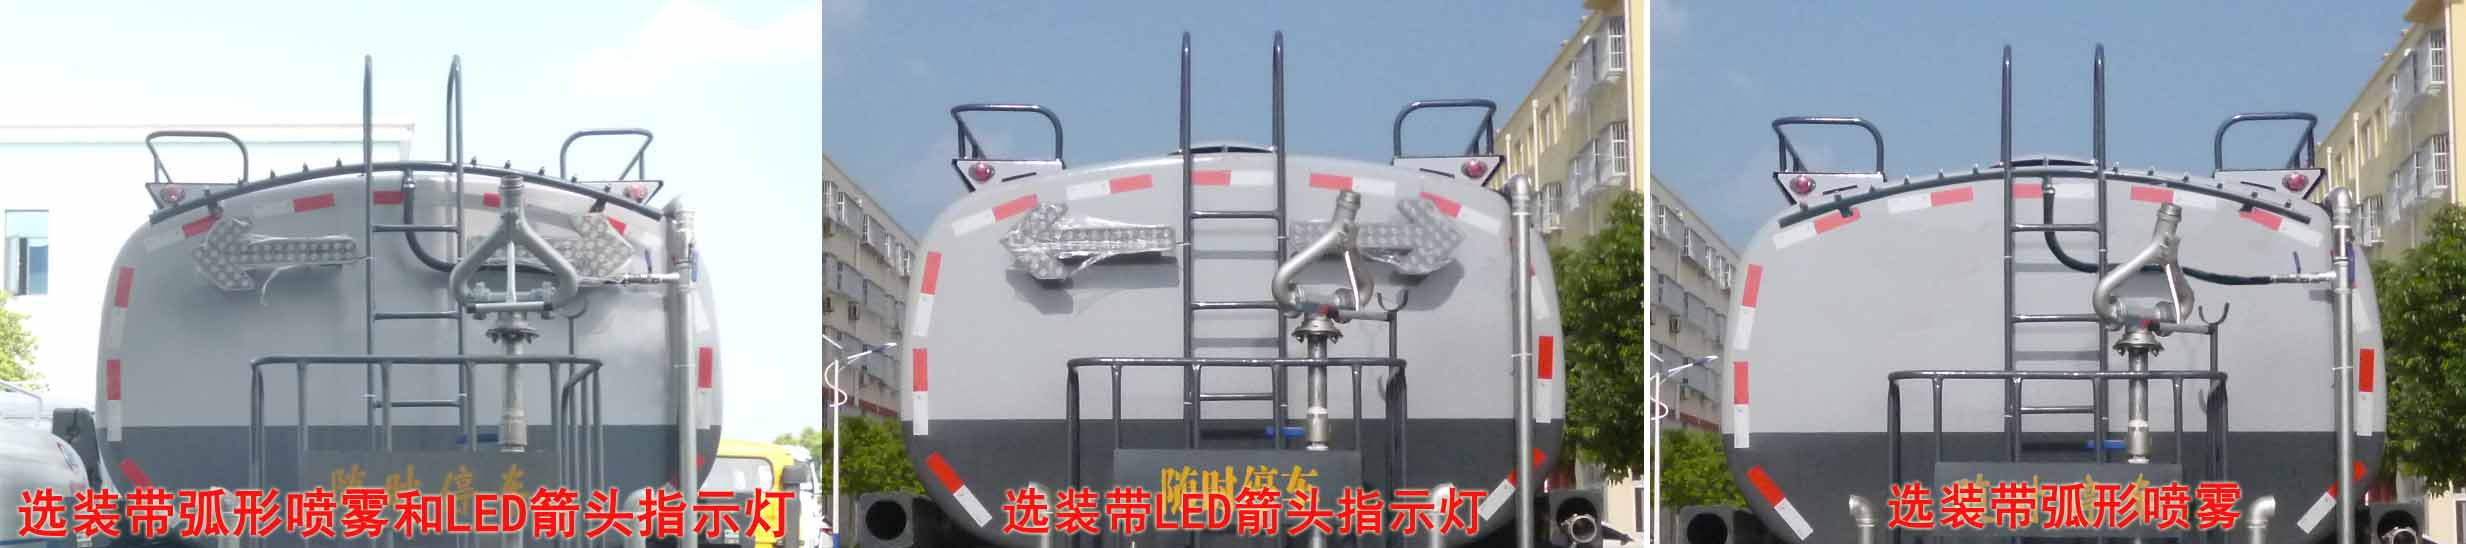 CLW5183GPSD6绿化喷洒车